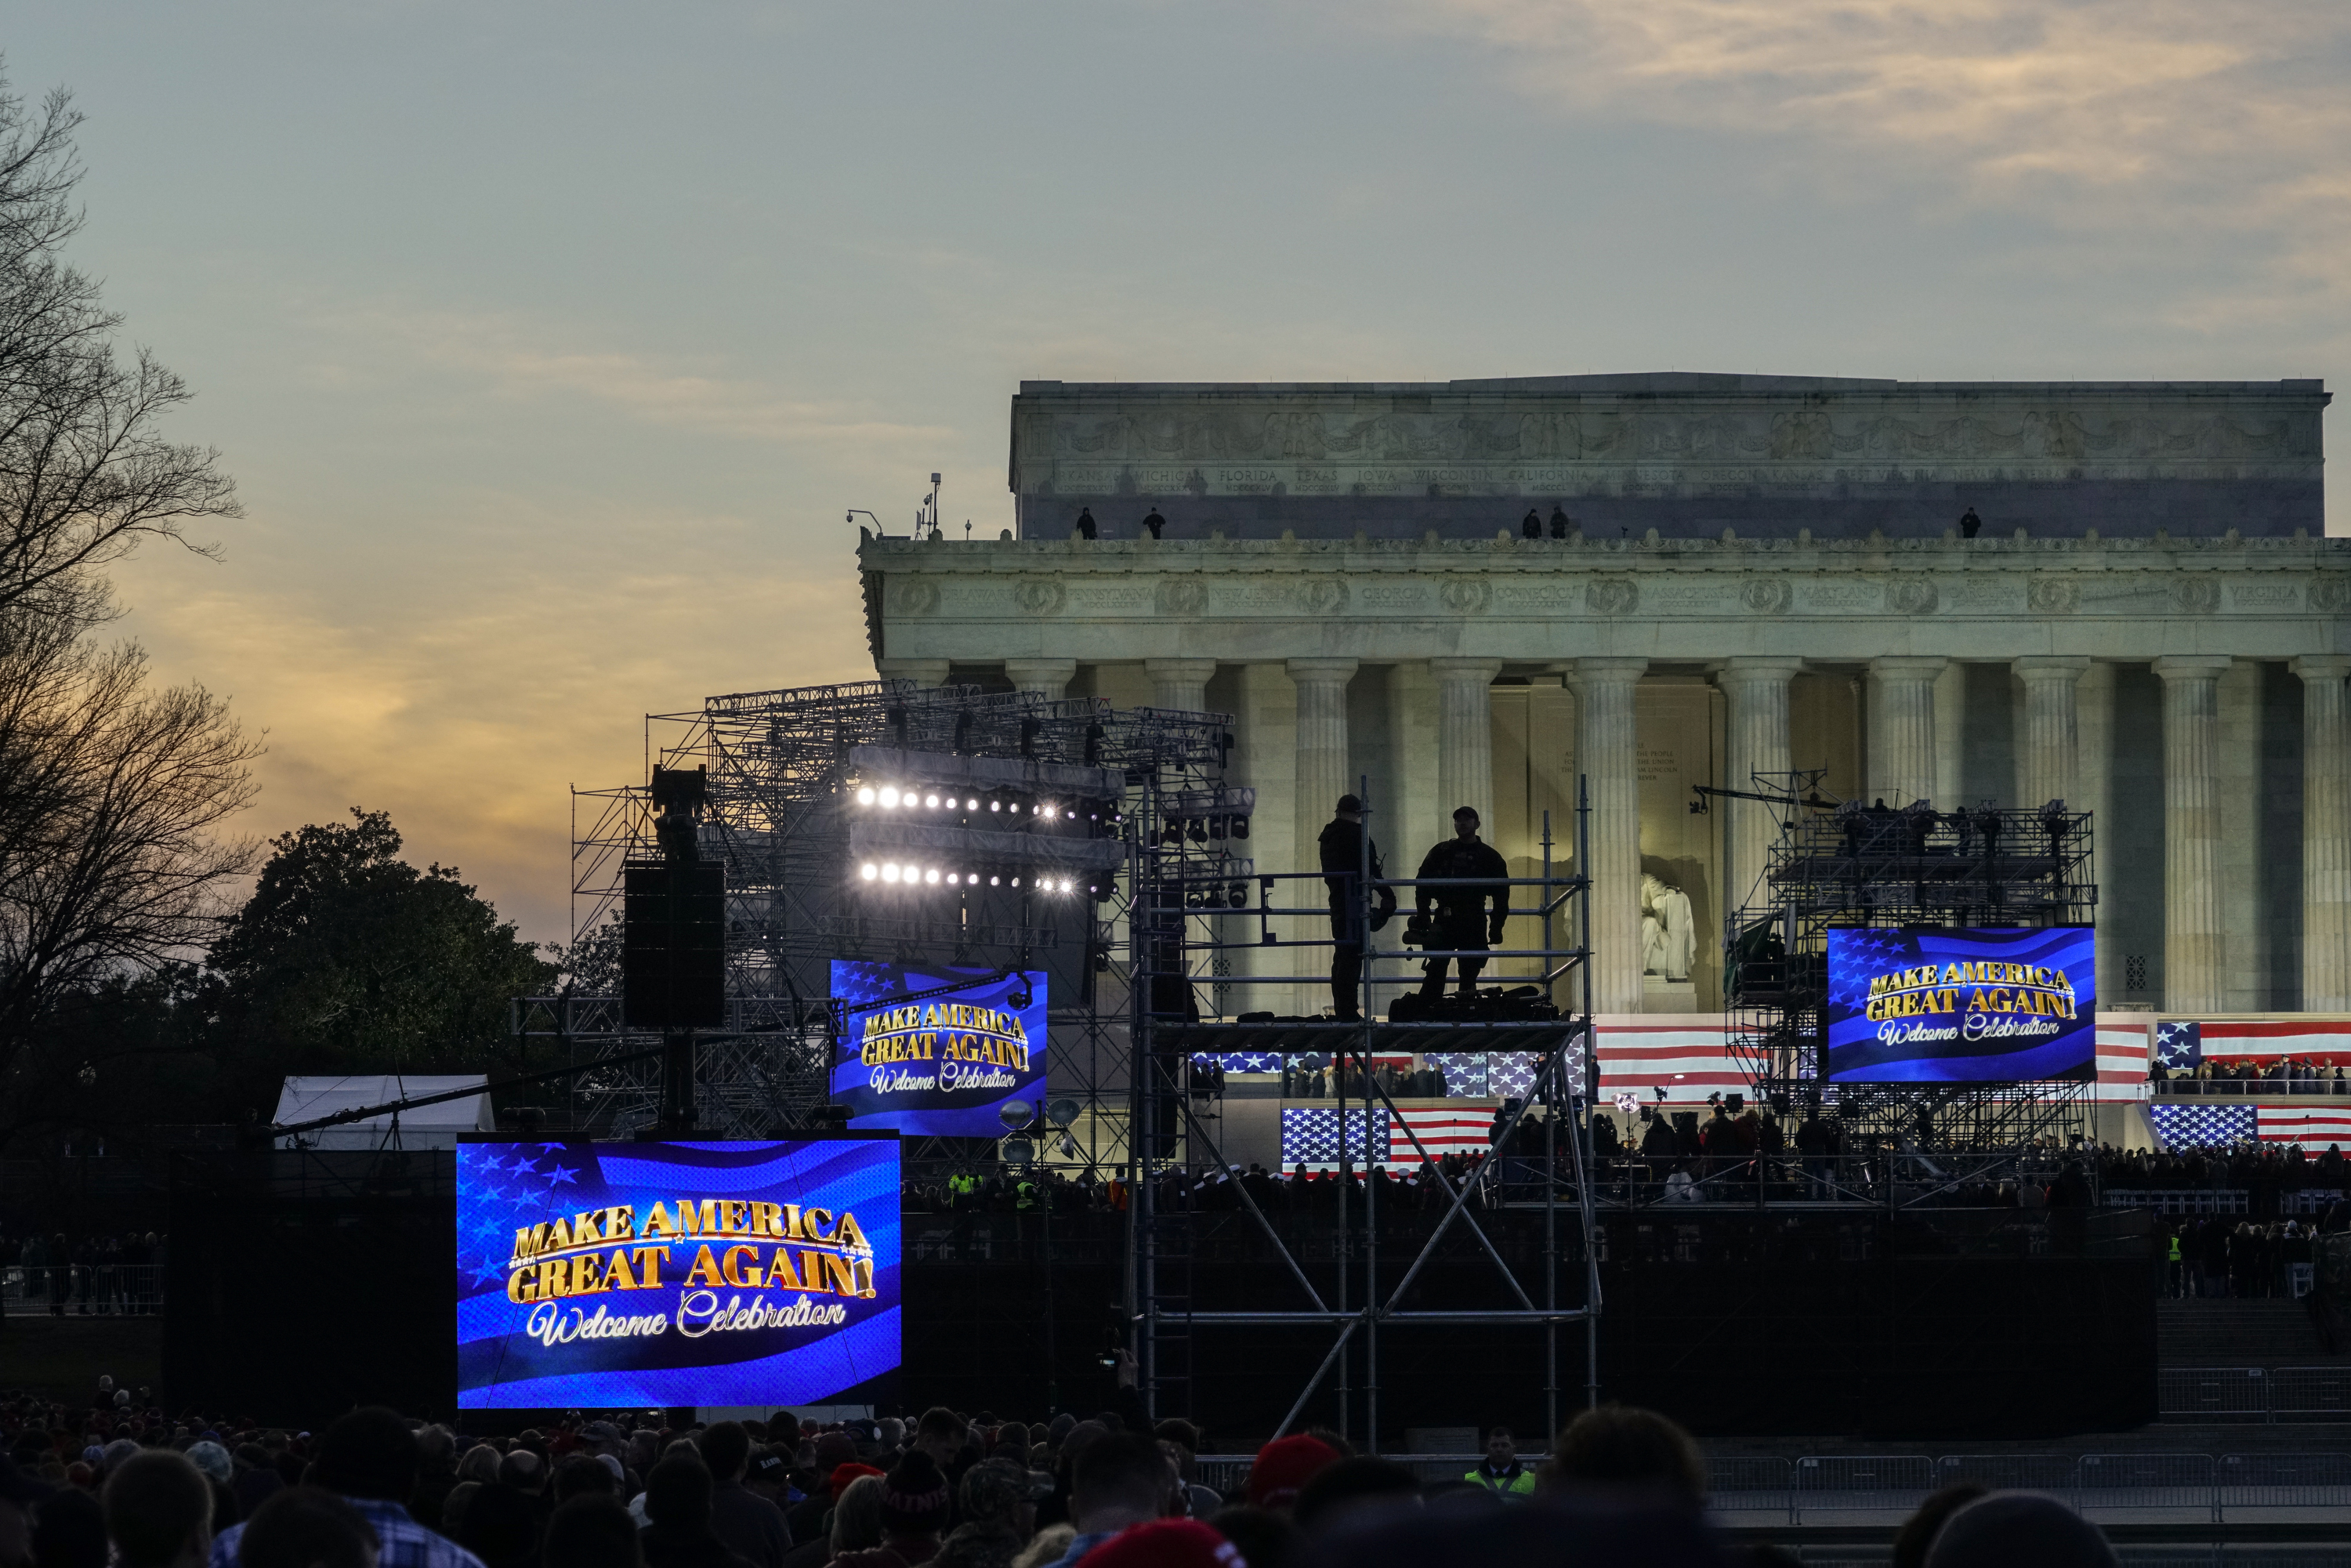 A view of the setup at the  Voices of the People: Make America Great Again Welcome Concert  in front of the Lincoln Memorial on Jan. 19, 2017.